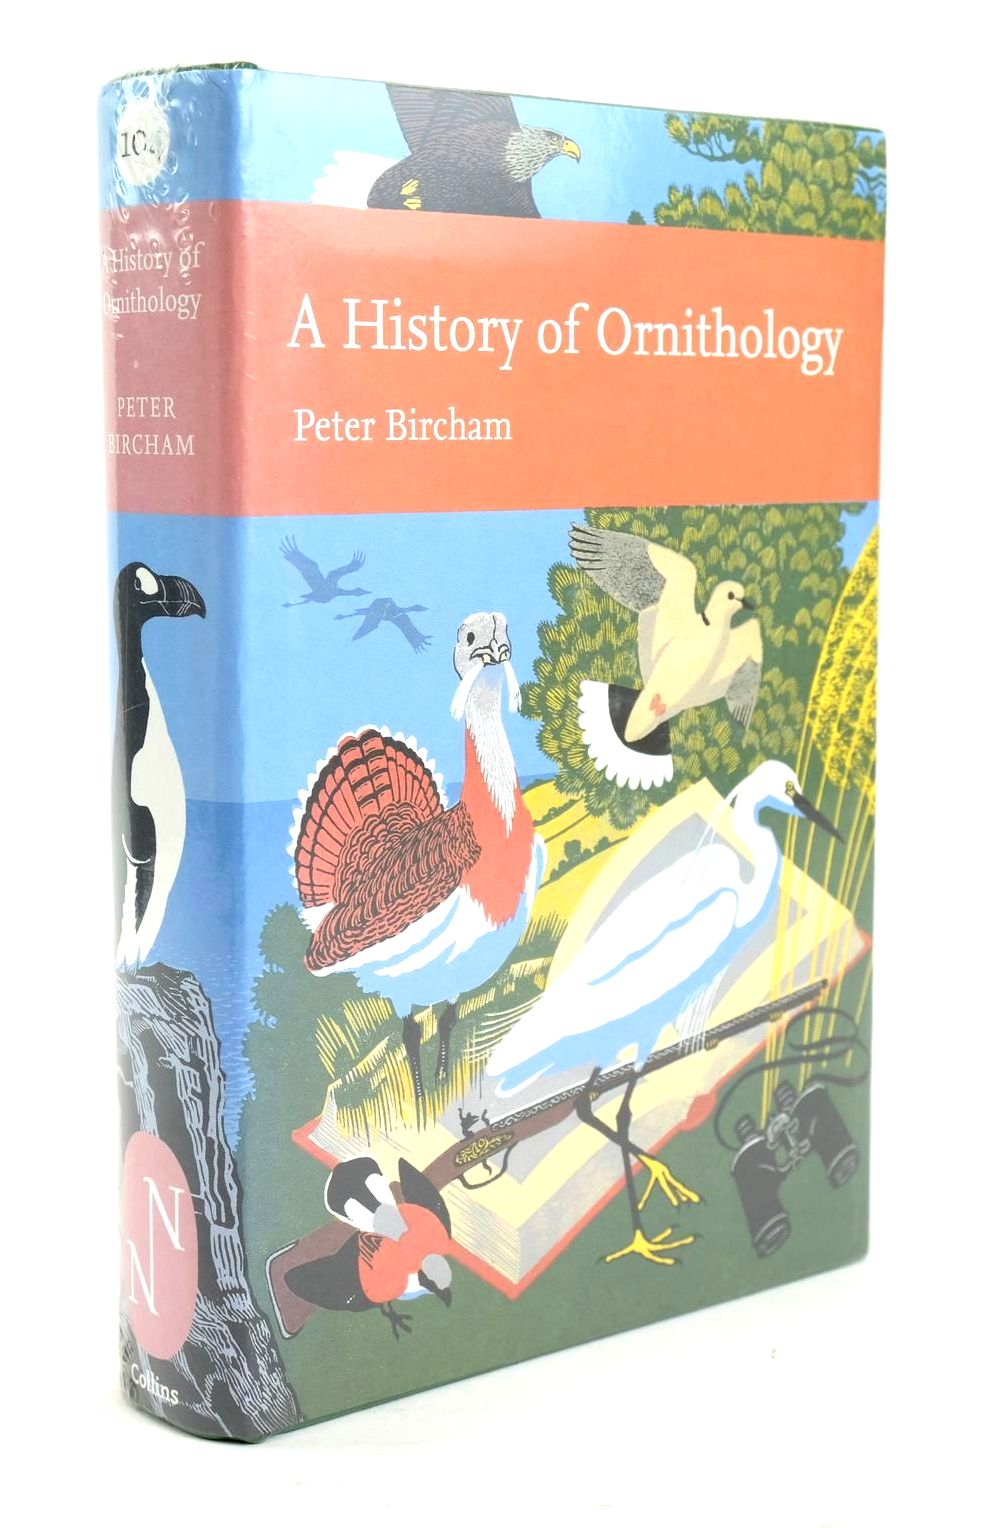 Photo of A HISTORY OF ORNITHOLOGY (NN 104) written by Bircham, Peter published by Collins (STOCK CODE: 1319459)  for sale by Stella & Rose's Books